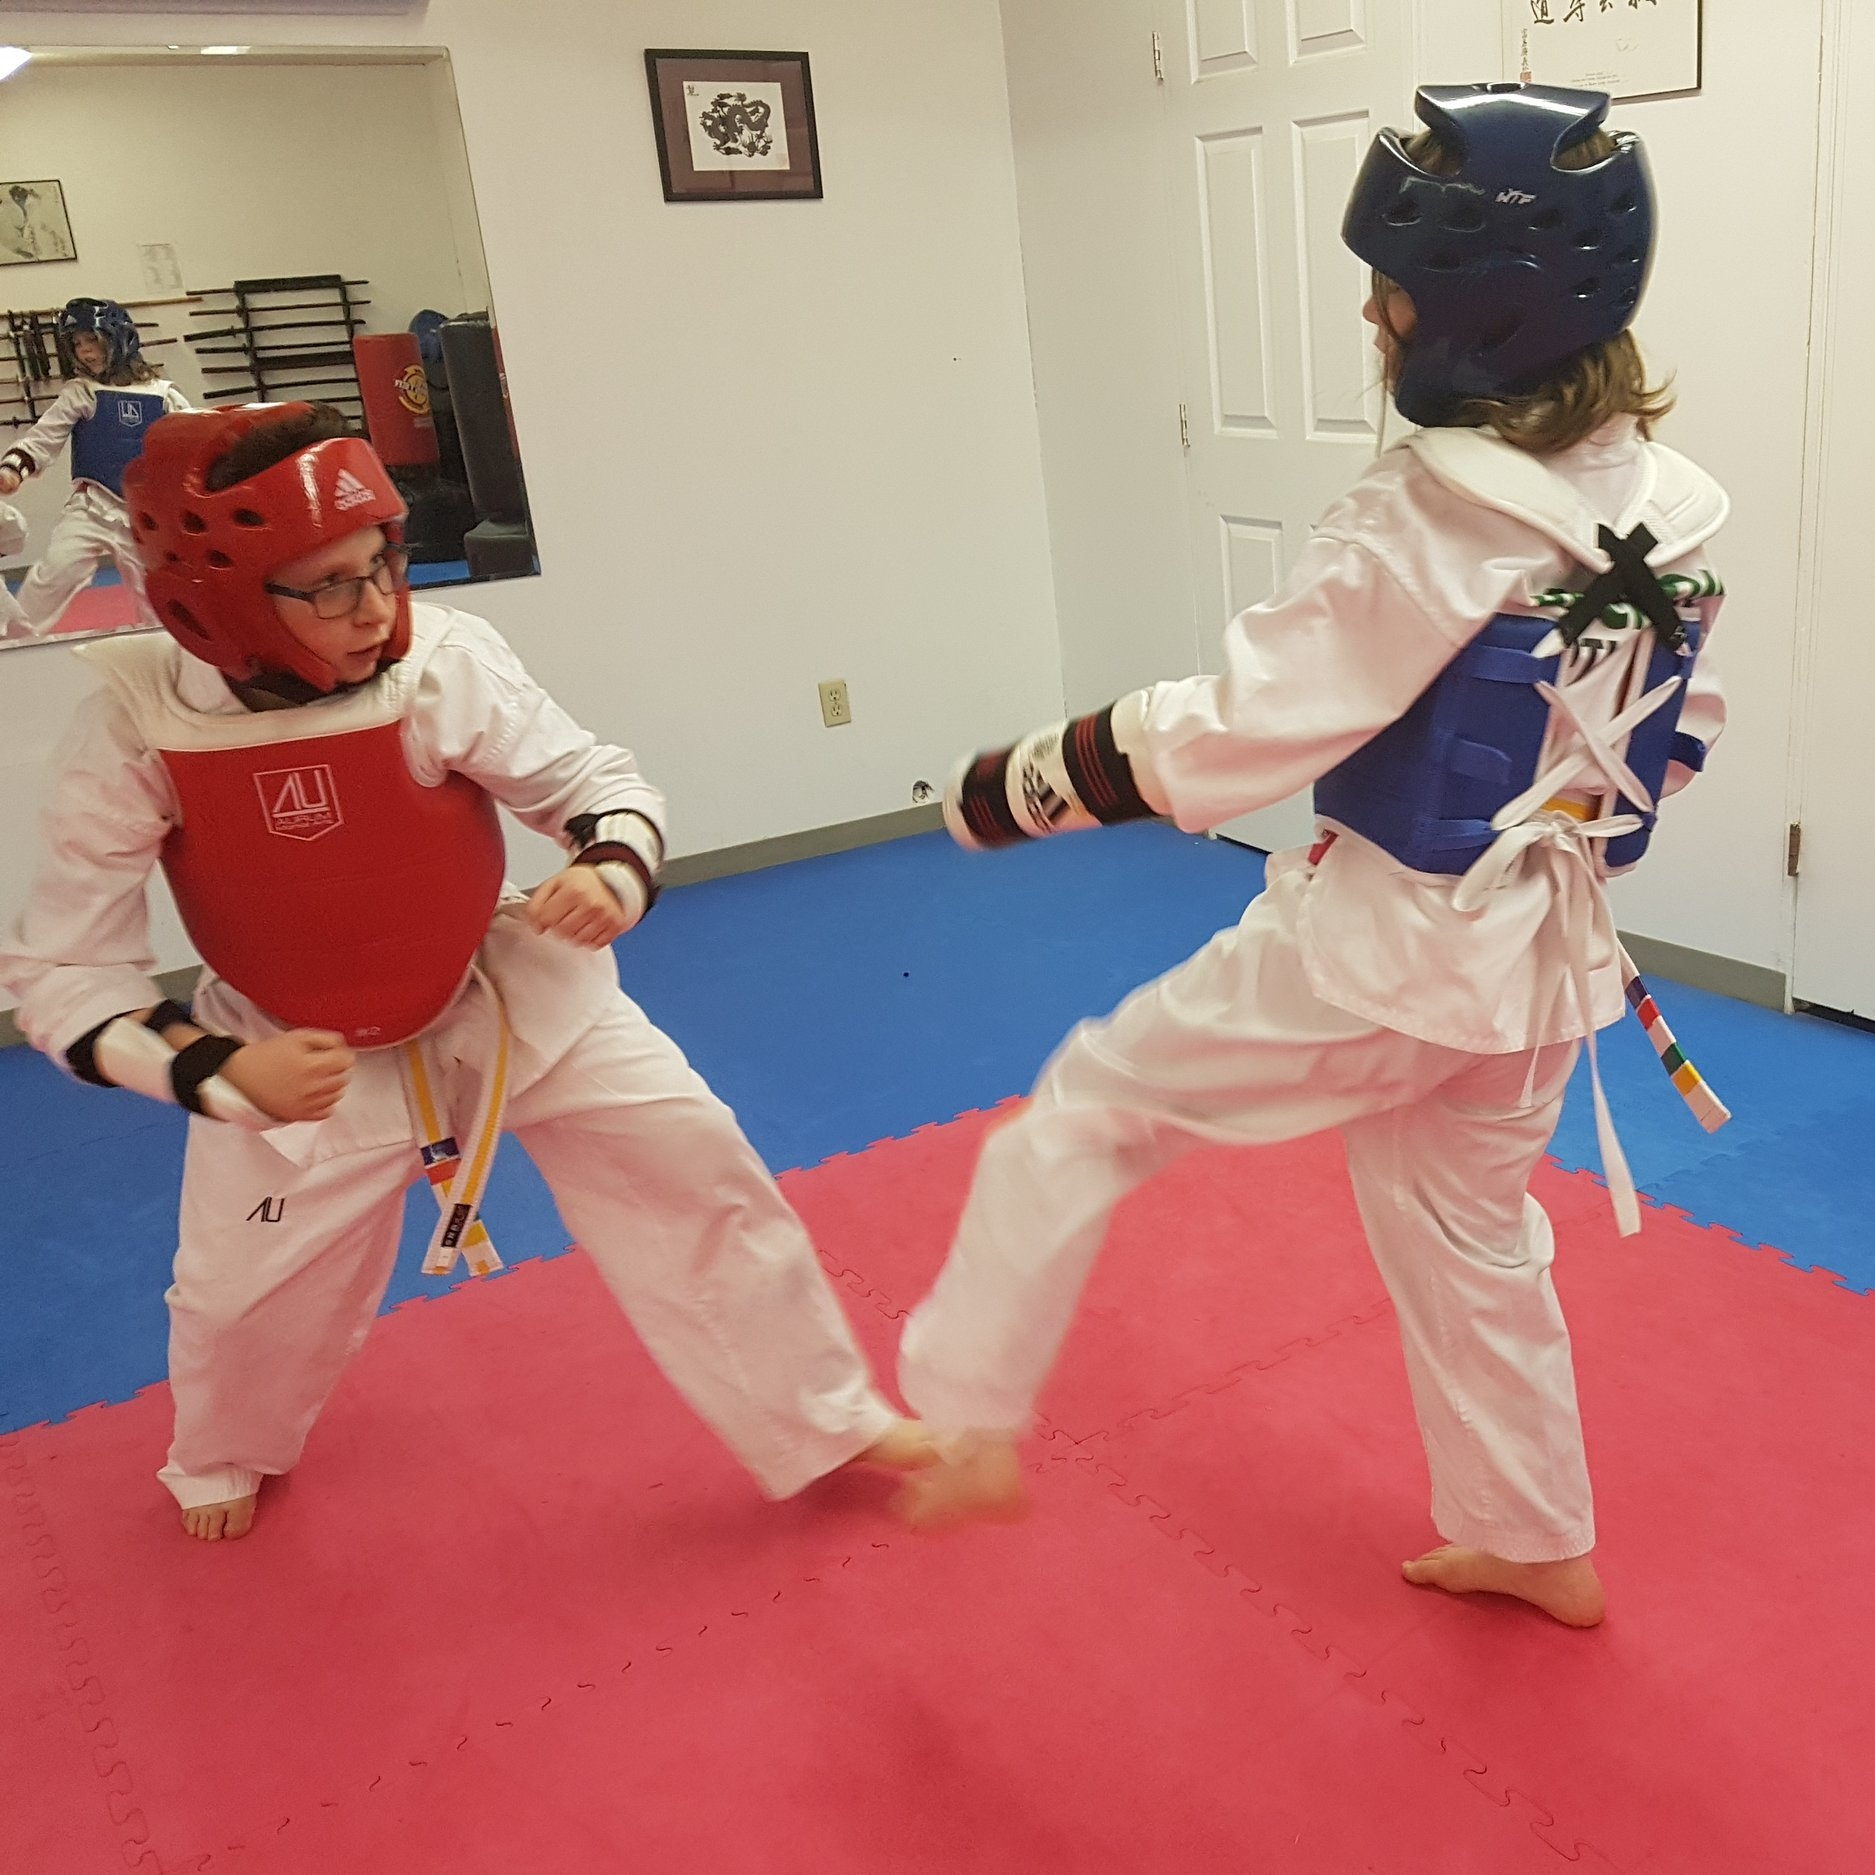 Competition Training - Sun 12:00-1:30 This class is for students who wish to spar competitively at tournaments. Students learn the rules of Olympic style sparring (World Taekwondo) and get more practice with contact than in regular classes. They also do sparring-specific conditioning.